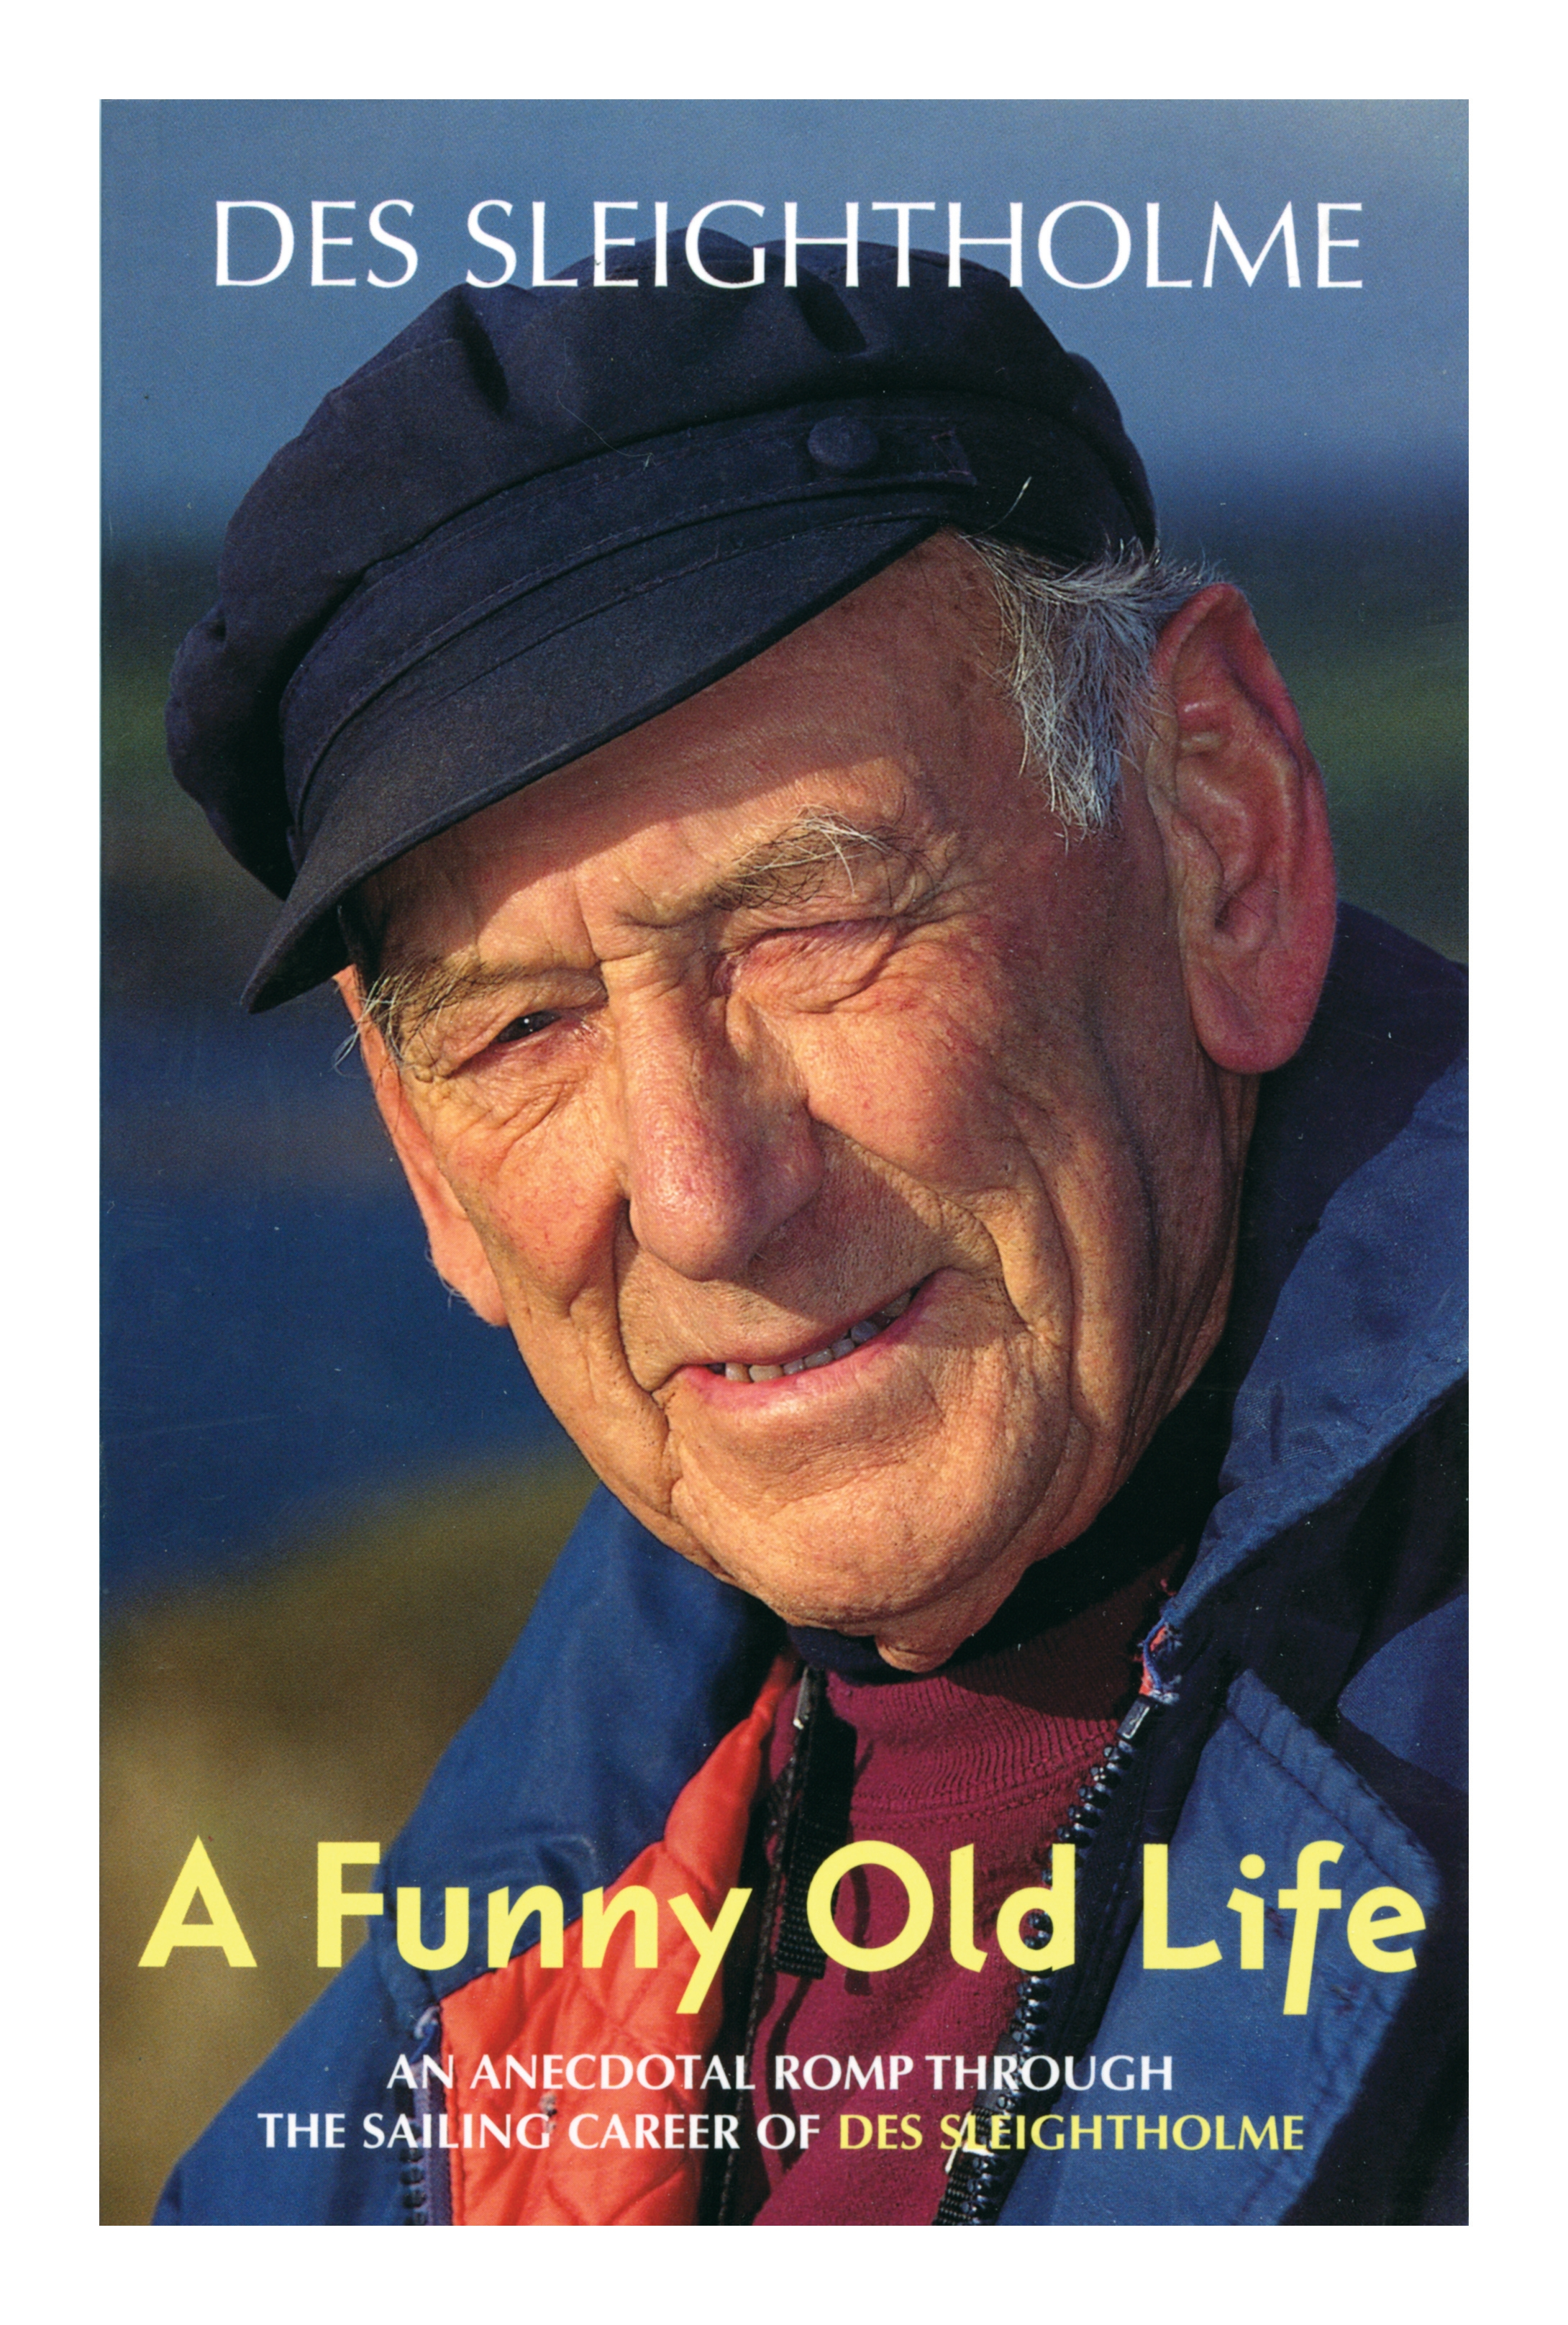 A Funny Old Life An Anecdotal Romp Through the Sailing Career of Des Sleightholme